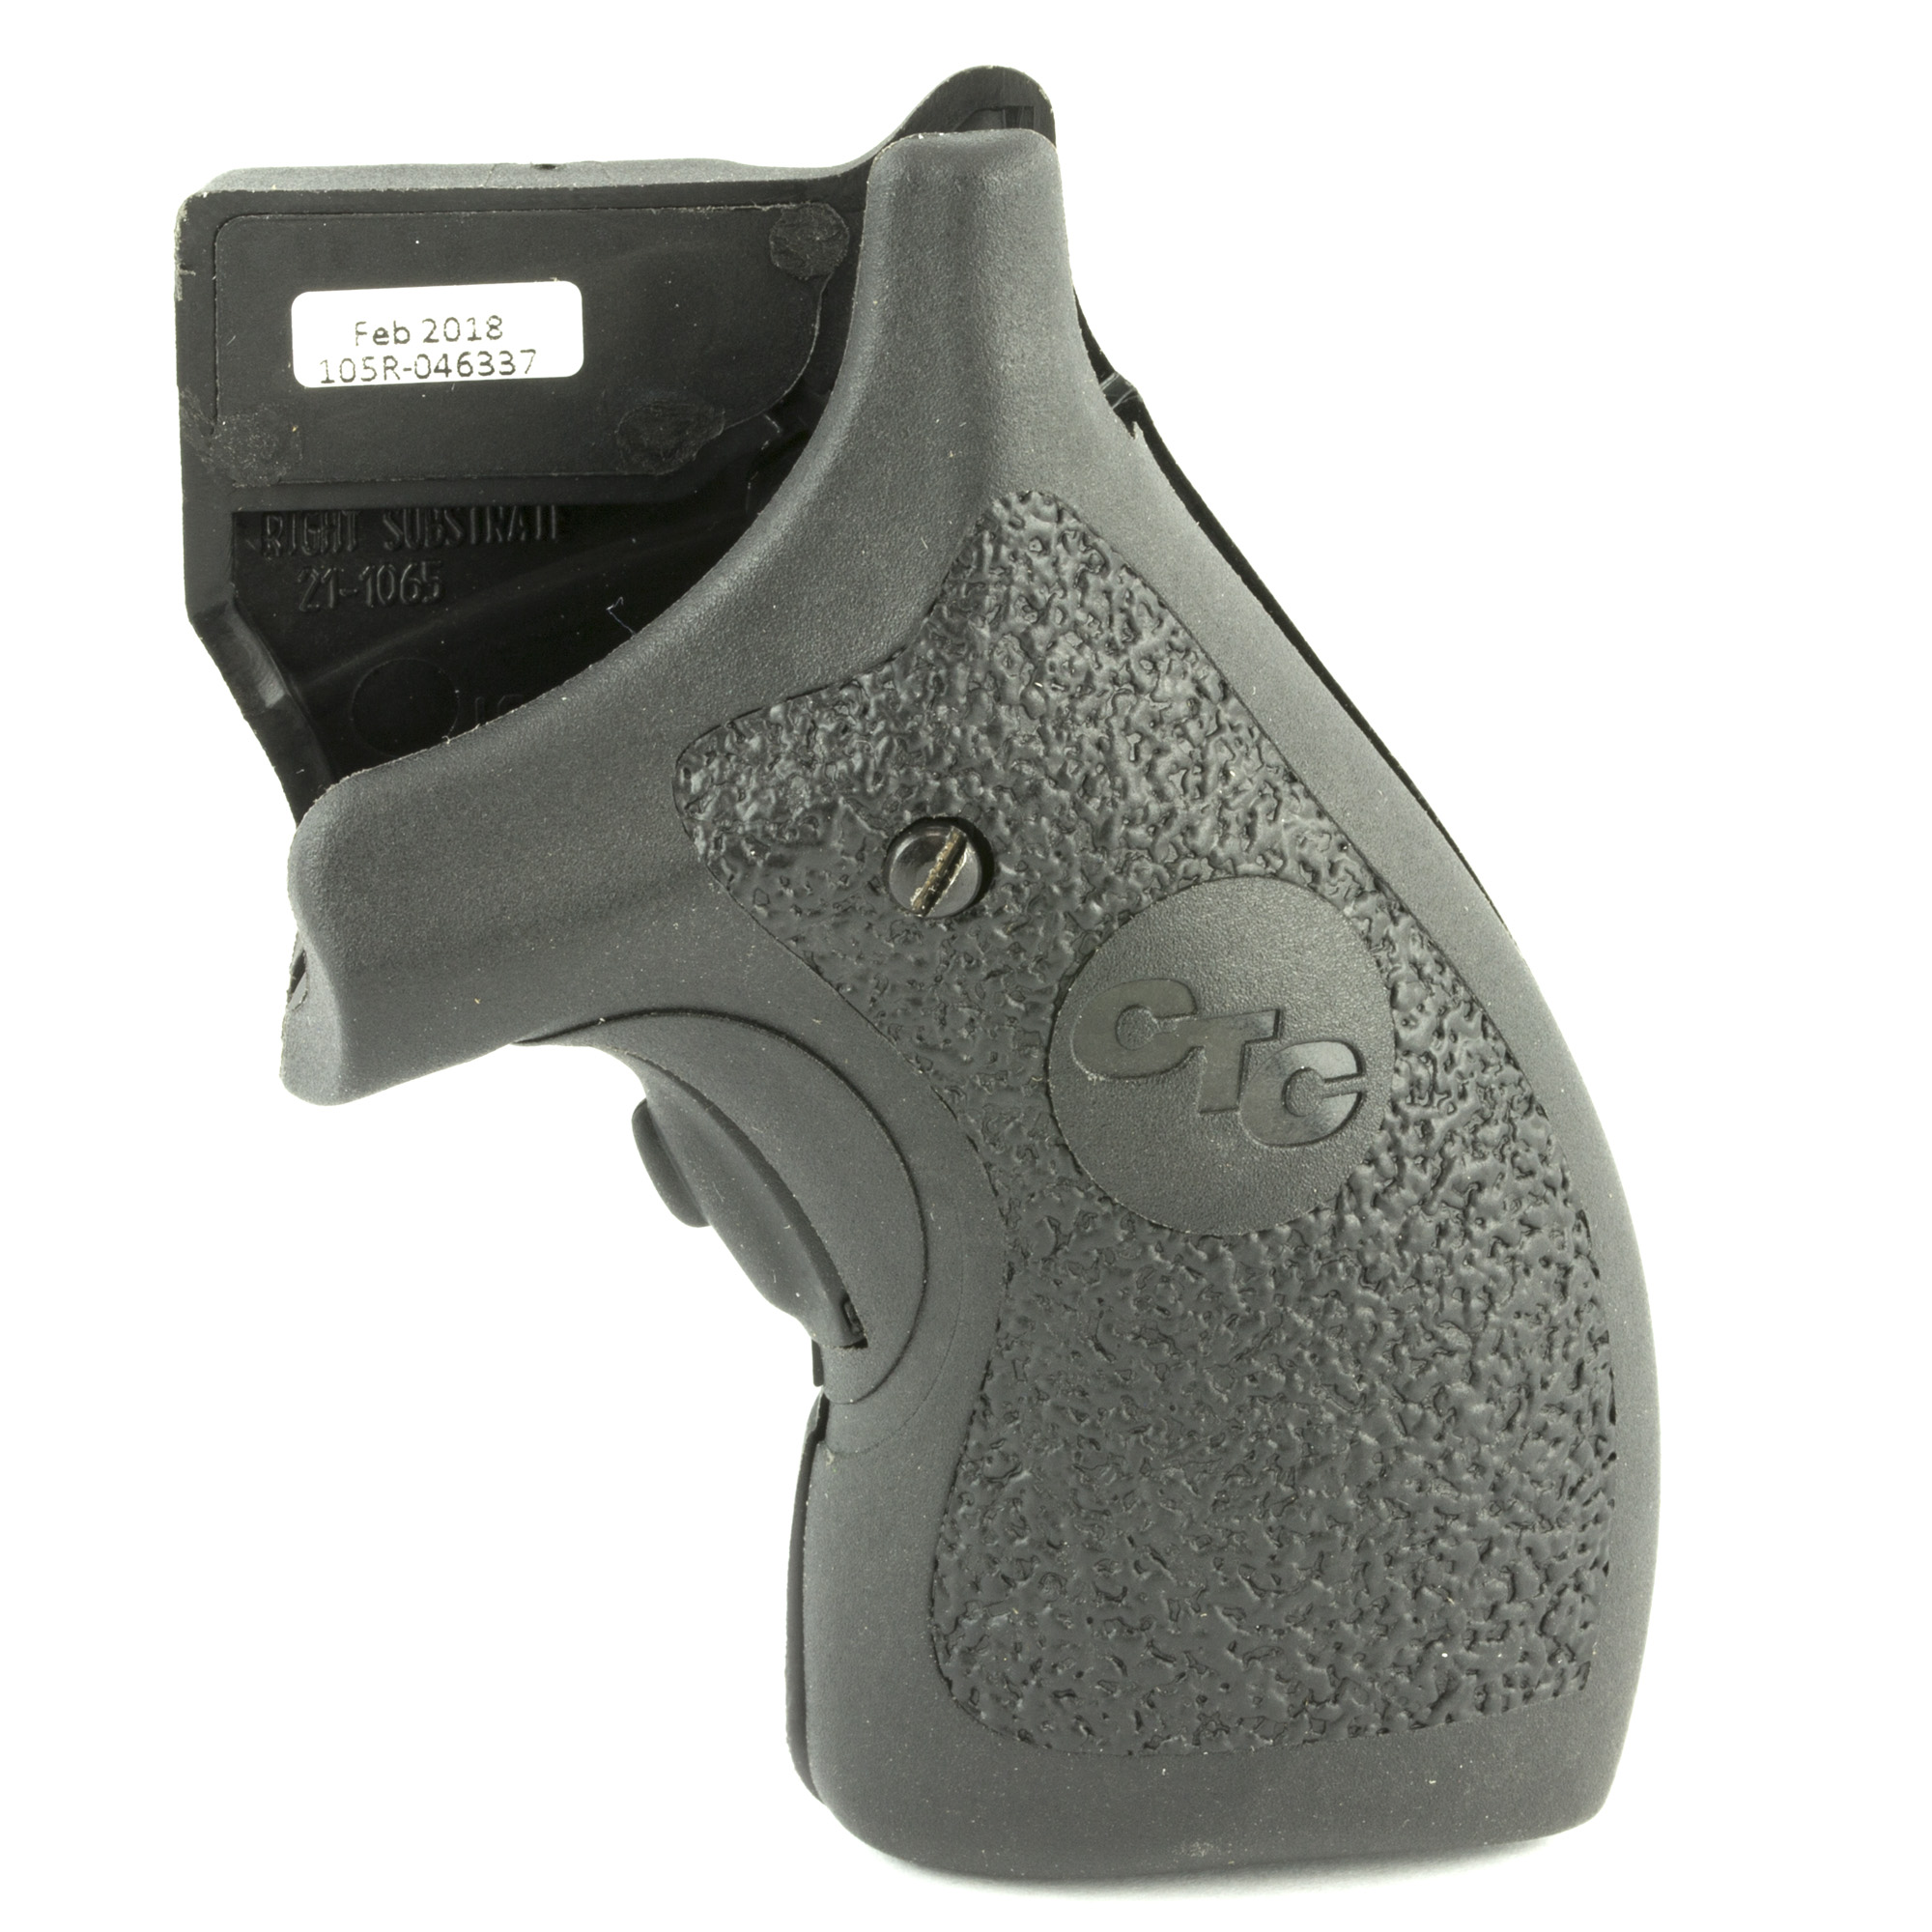 """LG-105 laser sights for the wildly popular Smith & Wesson J-Frame revolver line feature a hard polymer surface that is rugged and well suited for personal defense. The smooth feel of the polymer provides for a prompt"""" snag-free draw. LG-105 Lasergrips(R) includes the durability"""" sighting adjustments"""" and the defensive advantage that Crimson Trace(R) is famous for."""